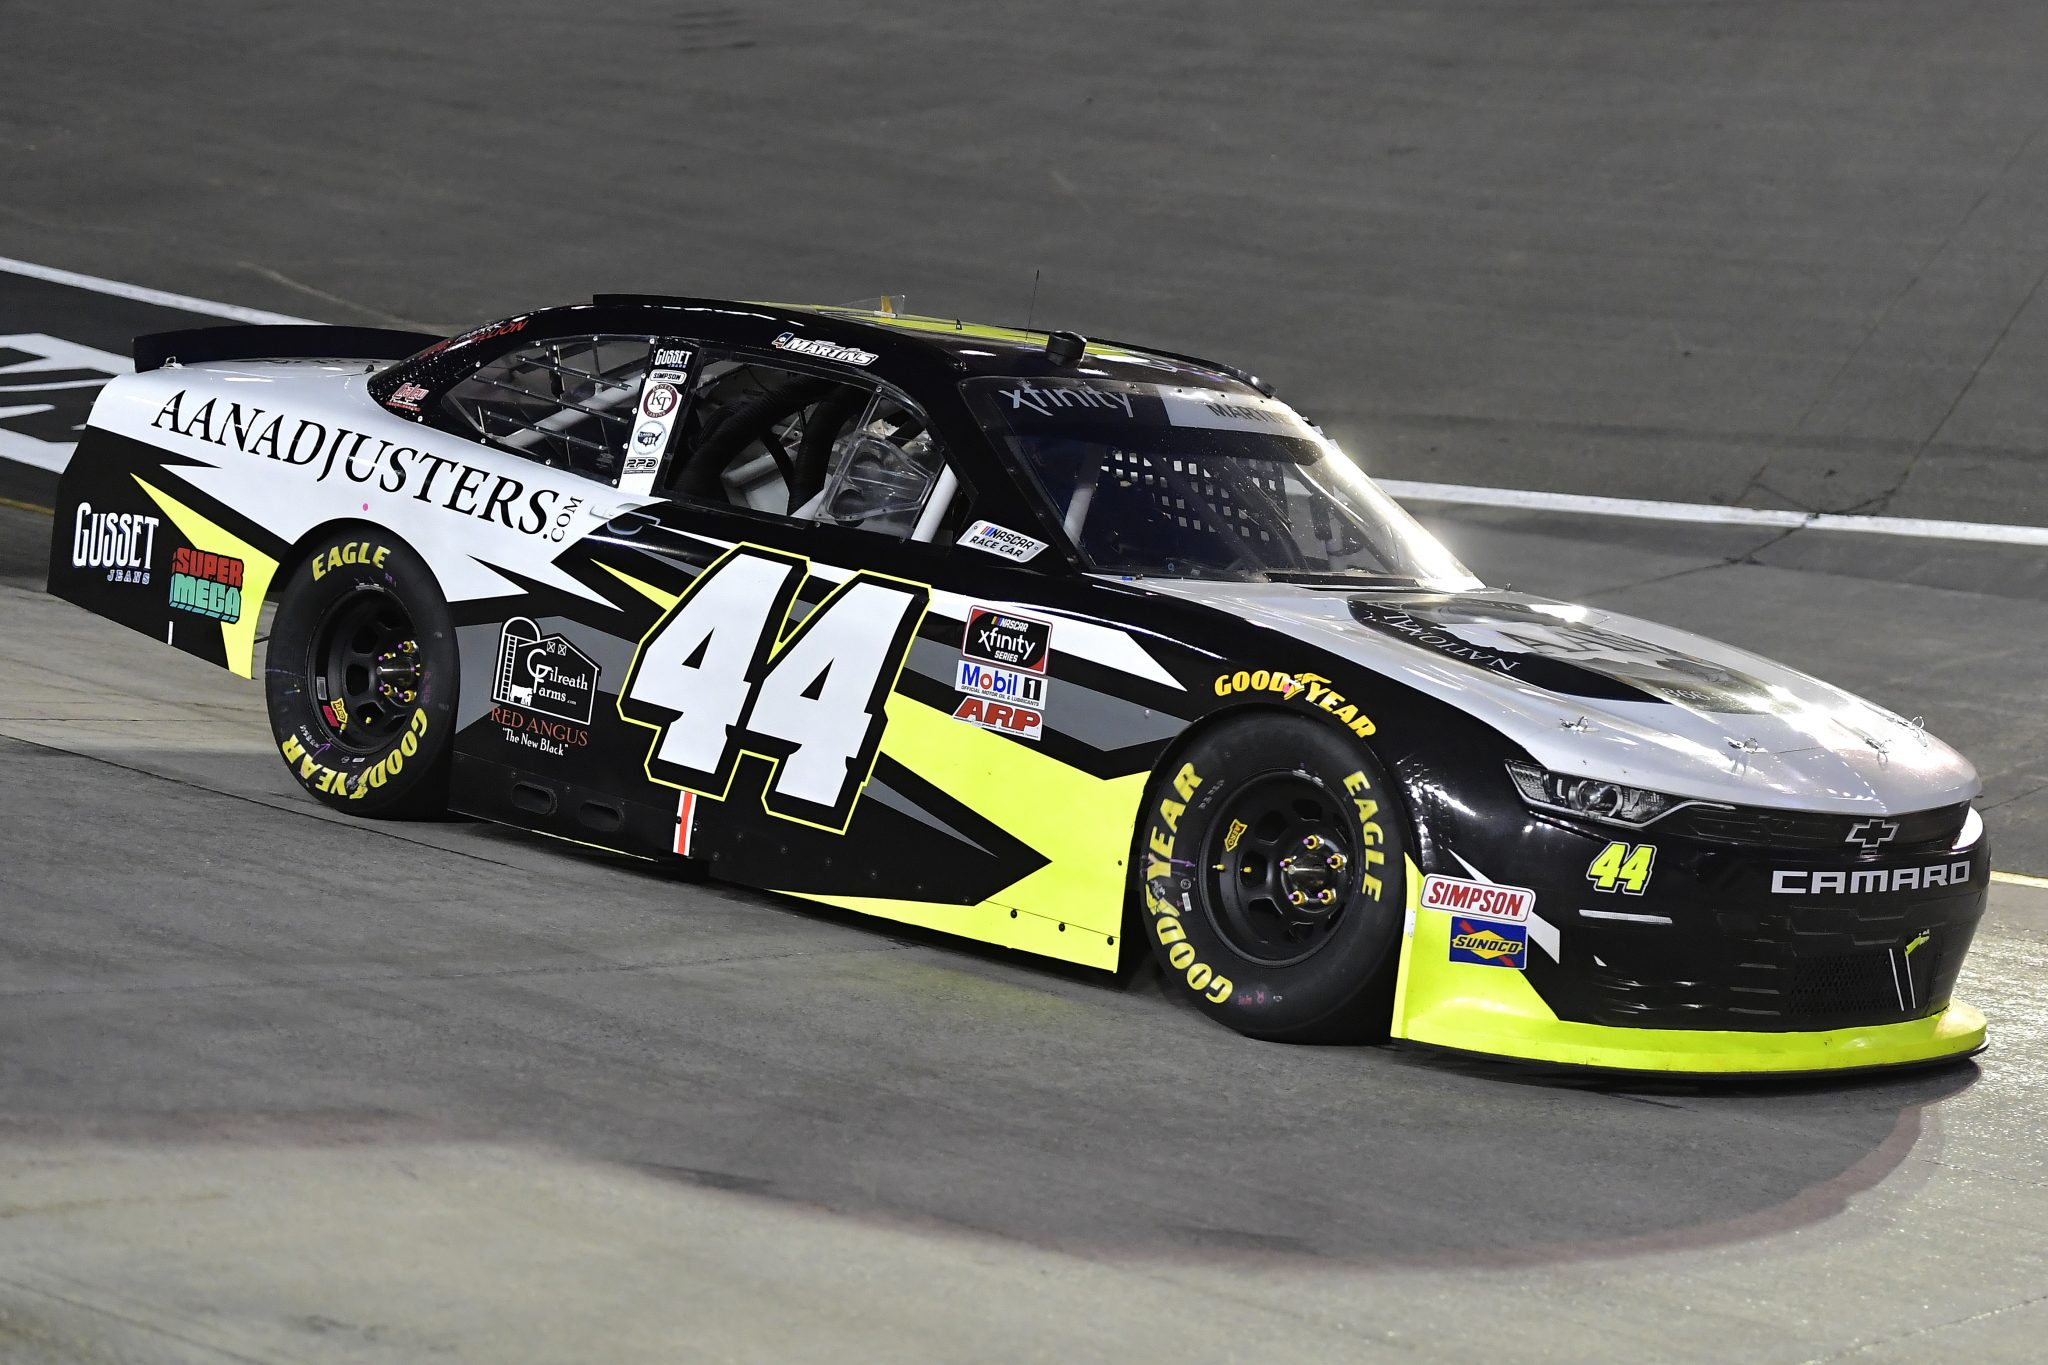 BRISTOL, TENNESSEE - SEPTEMBER 17: Tommy Joe Martins, driver of the #44 AAN Adjusters Chevrolet, drives during the NASCAR Xfinity Series Food City 300 at Bristol Motor Speedway on September 17, 2021 in Bristol, Tennessee. (Photo by Logan Riely/Getty Images) | Getty Images